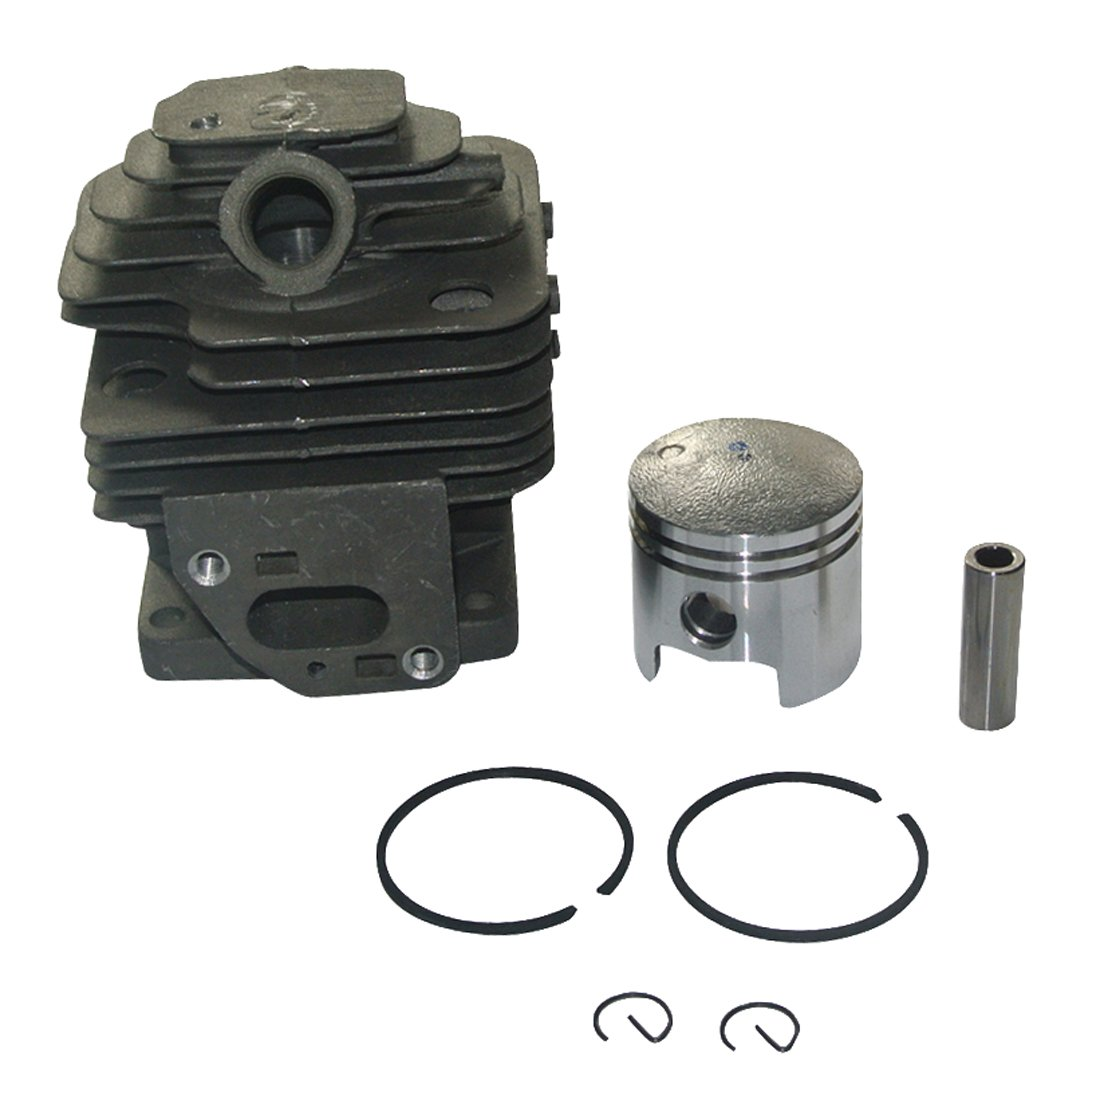 JRL Cylinder & Piston Replacement Kit For MITSUBISHI TL33 And BG330 Trimmer 36MM Huang Machinery